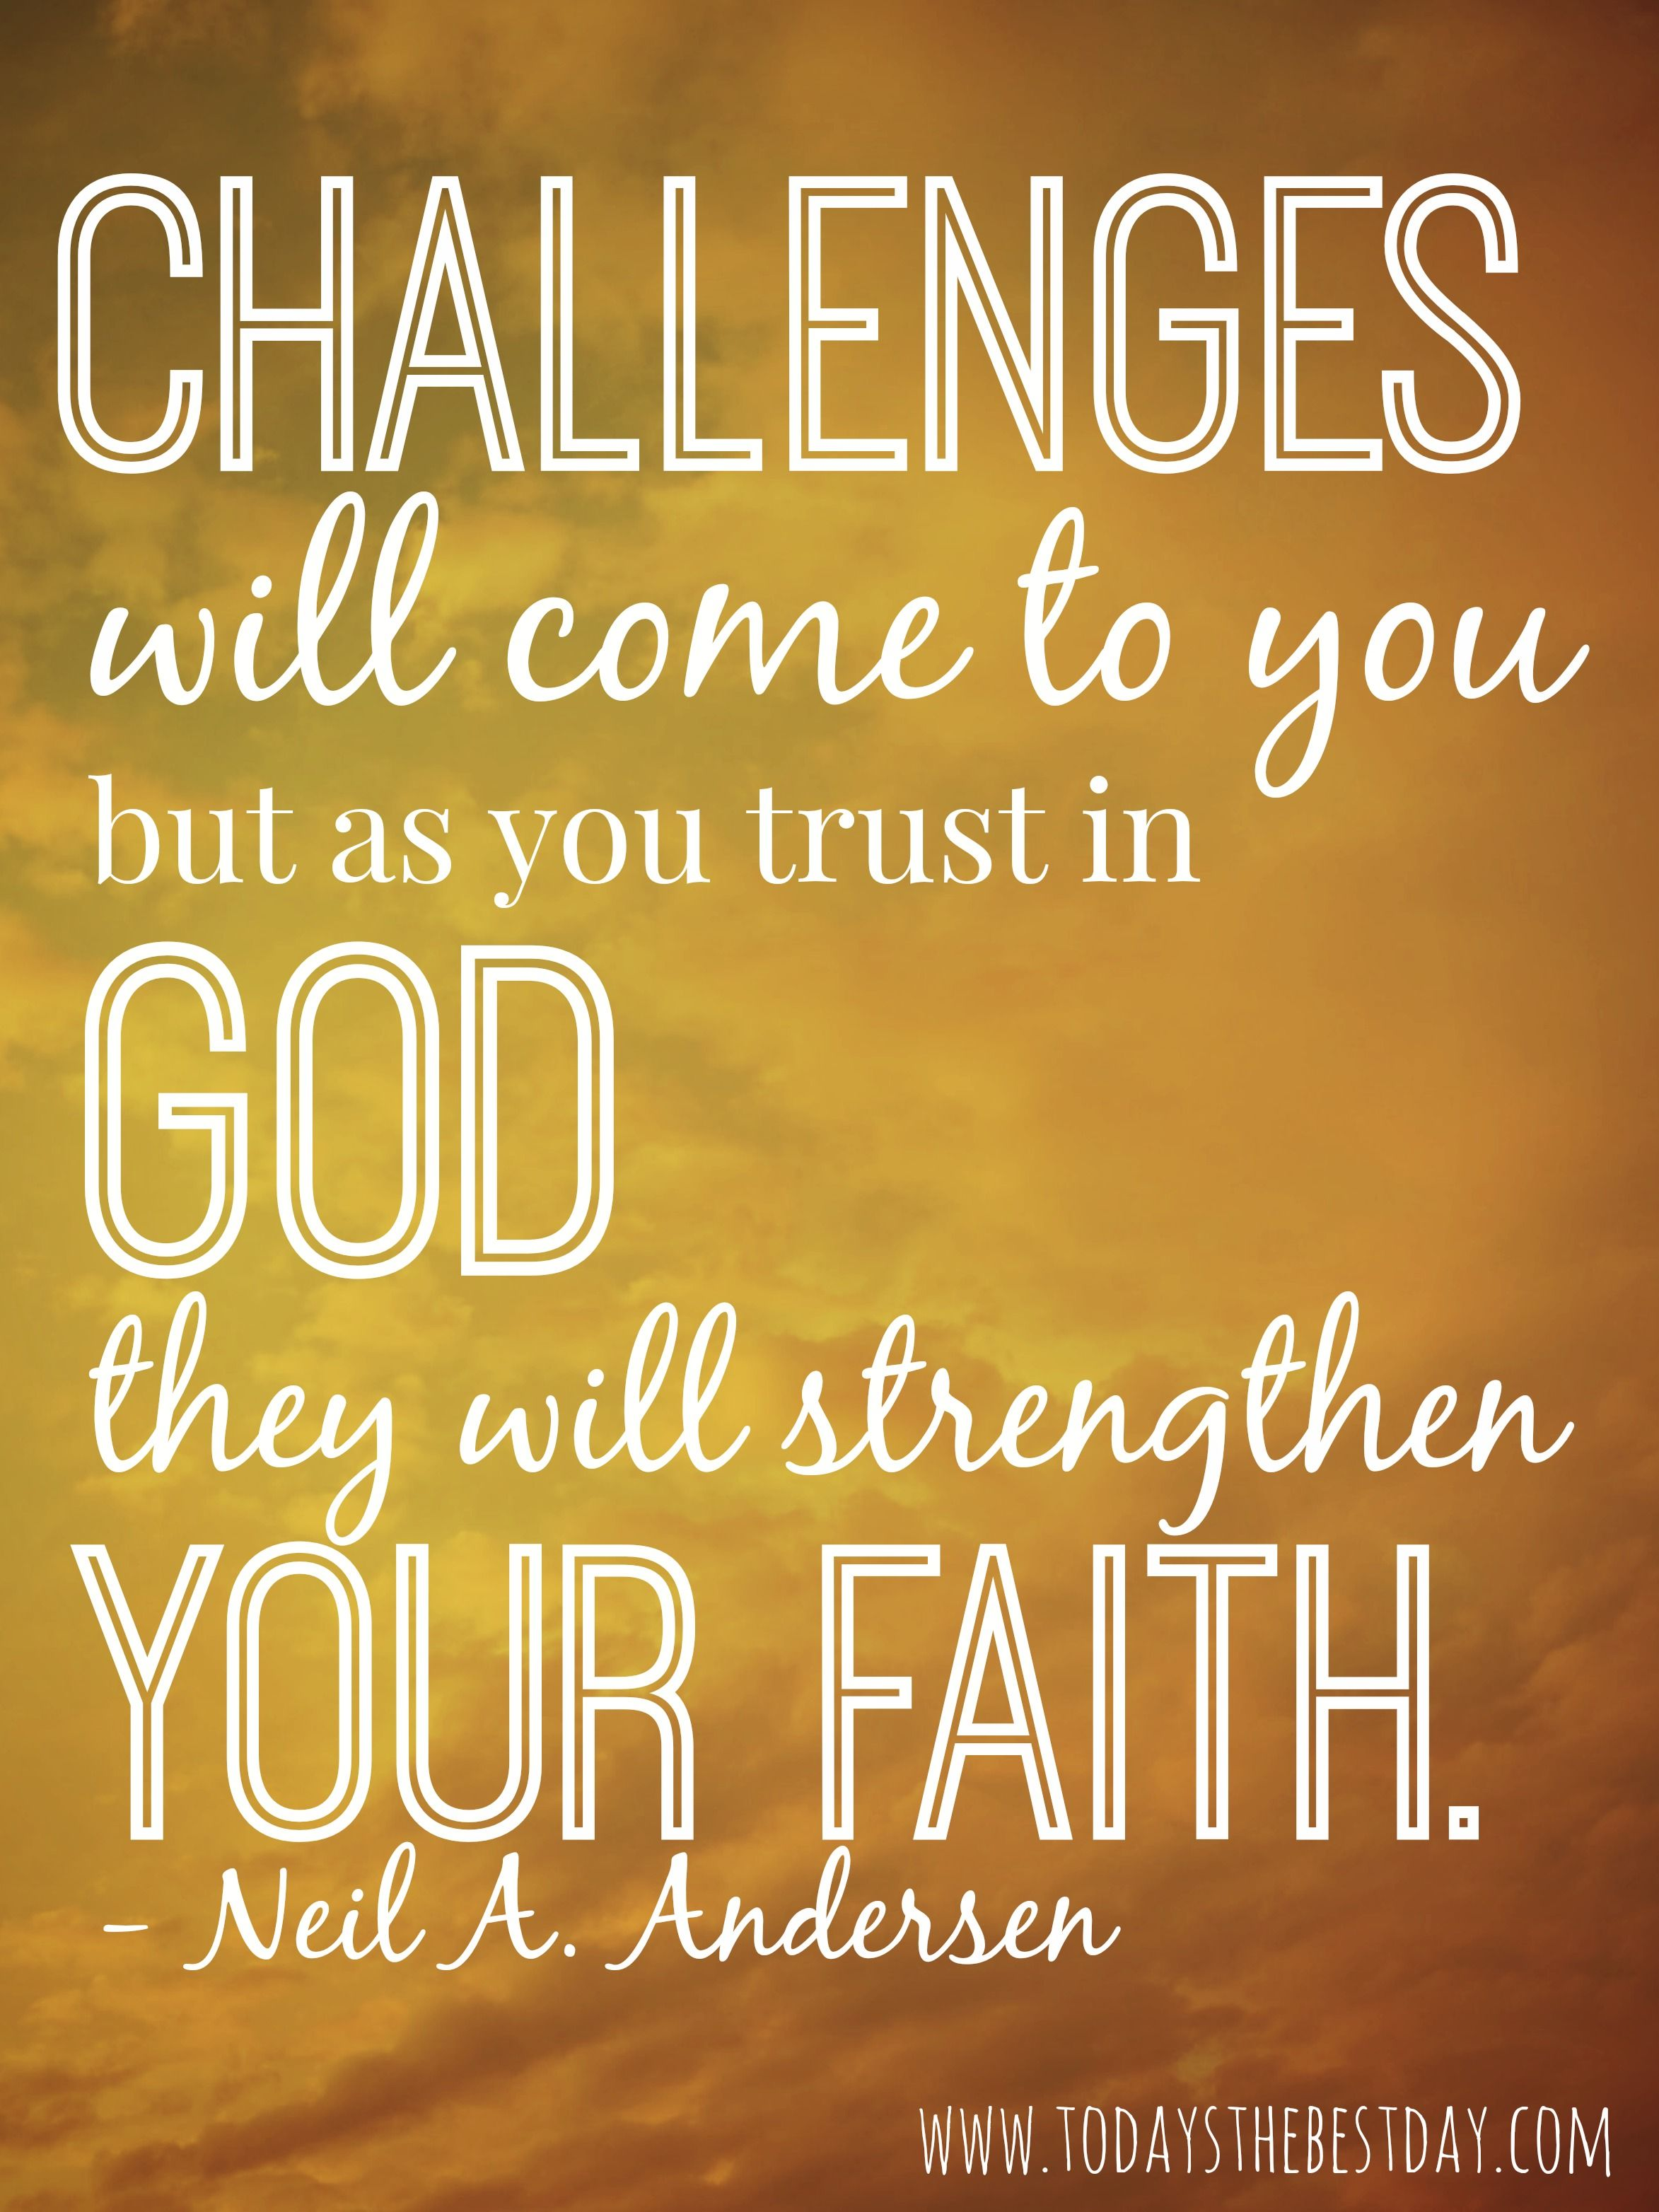 Religious Quotes About Faith Challenges Will Come To You But As You Trust In God They Will